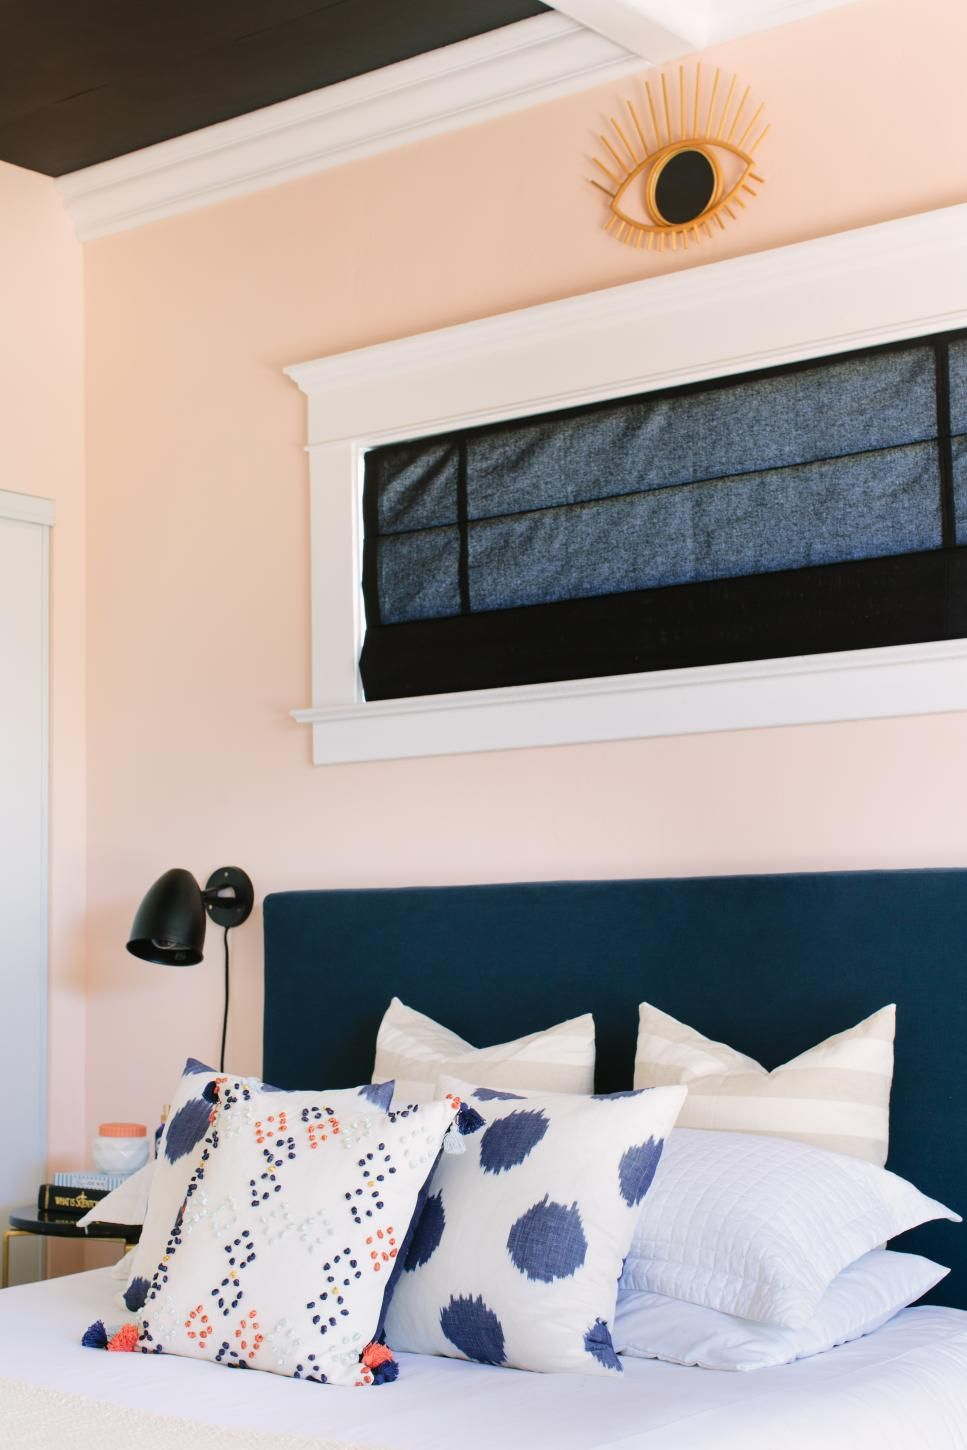 Bedroom With Blue Headboard And Wall Art Decor Peach Bedroom Bedroom Wall Colors Bedroom Inspirations